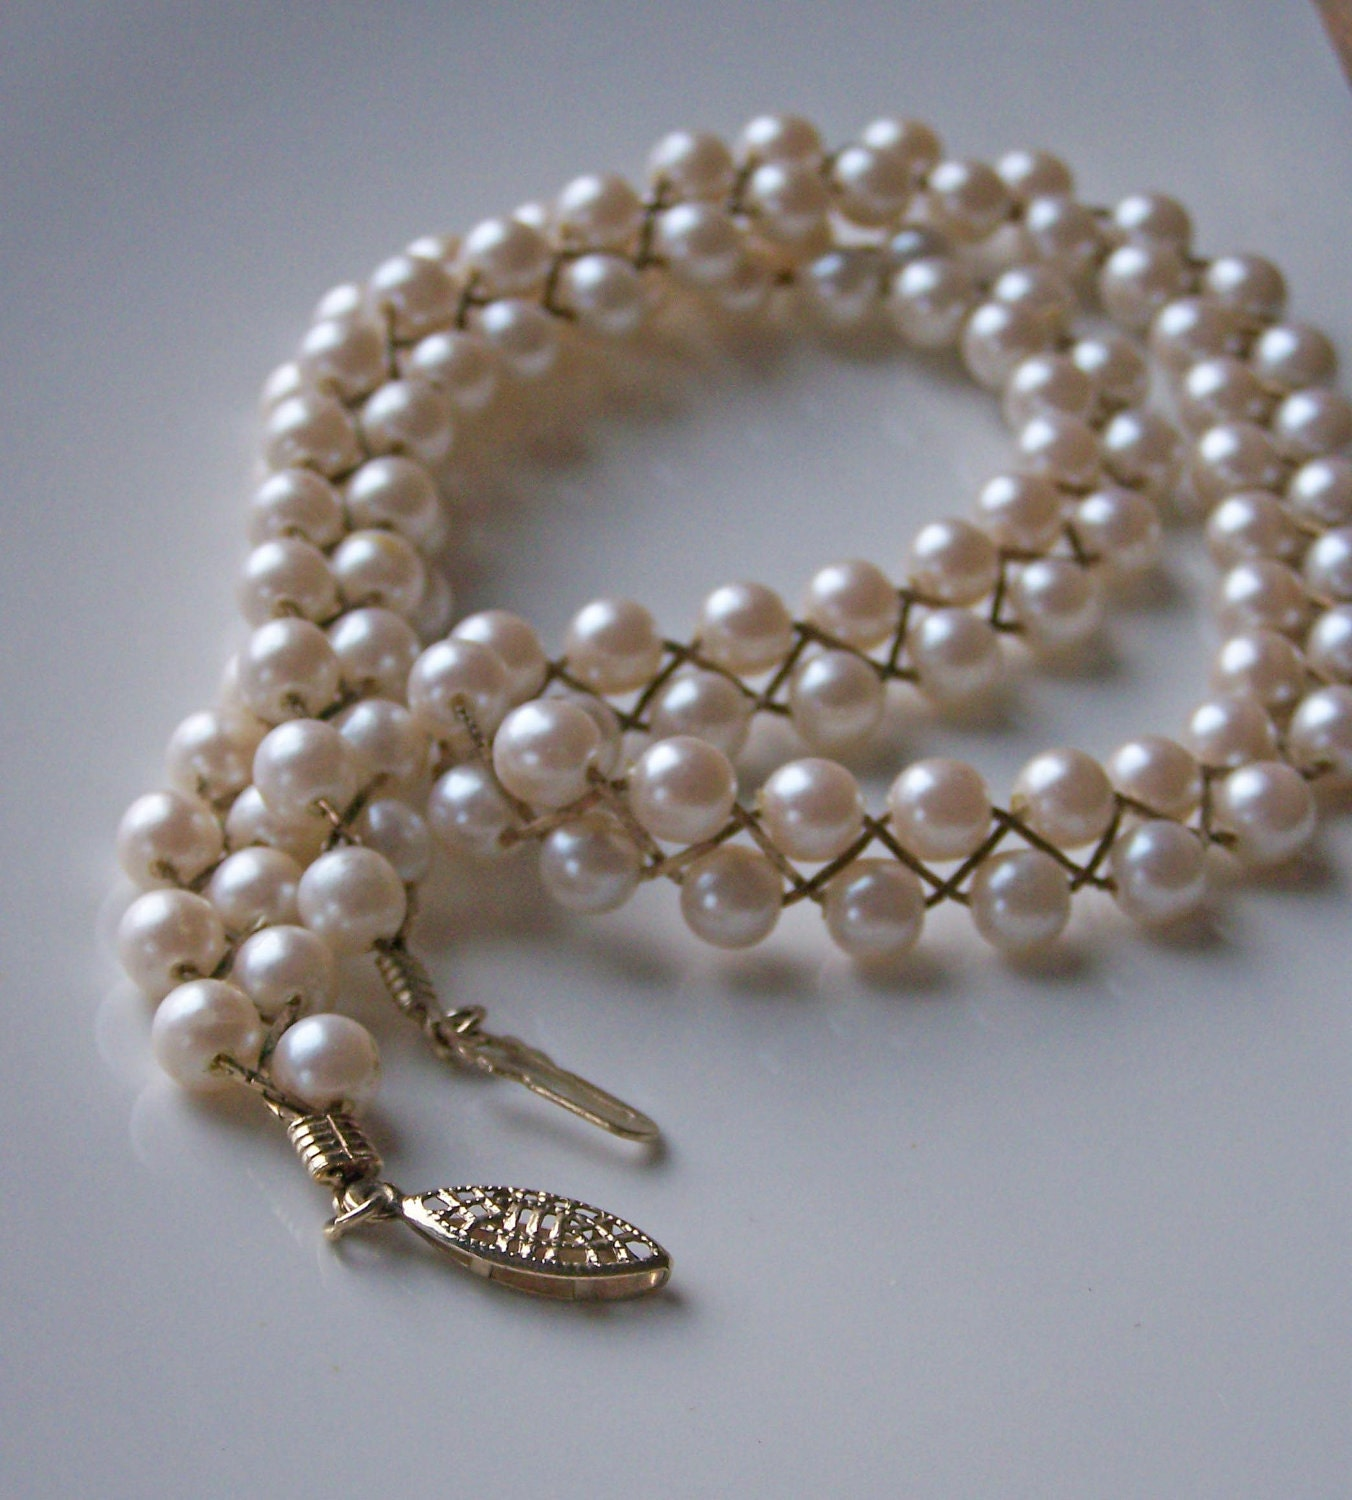 Vintage Pearl Choker Necklace: Etsy Vintage Pearls: Vintage Avon Braided Faux Pearl